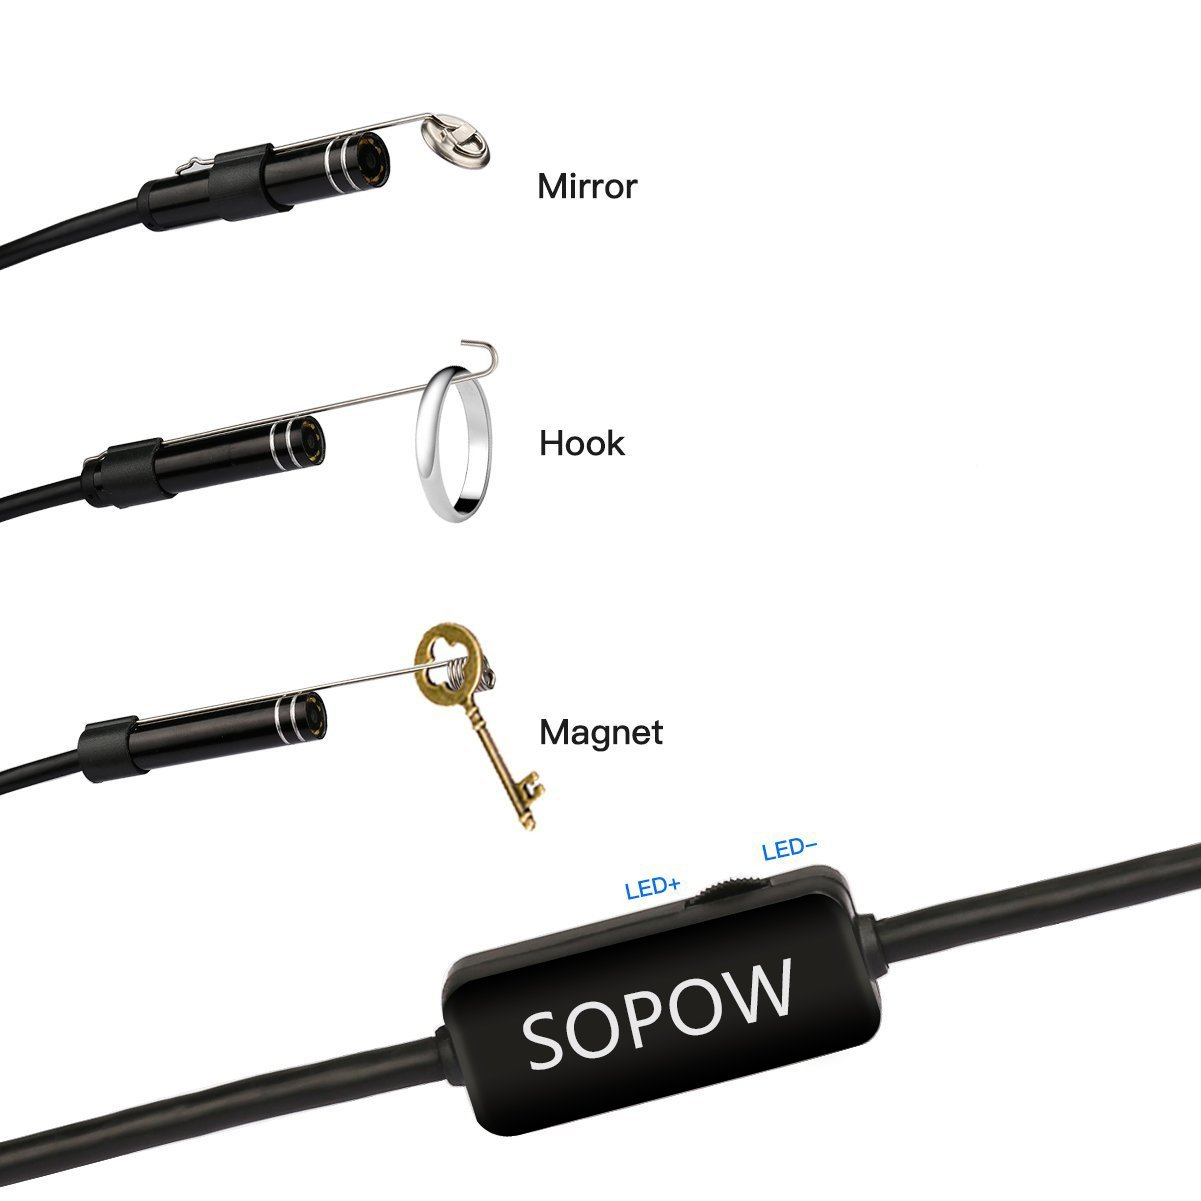 HD Endoscope USB Type C, SOPOW Soft-wire Android Endoscope Borescope Inspection Camera HD Snake Camera with 8 Adjustable Led Lights for Android Tpye-C Smartphone and PC - 5M